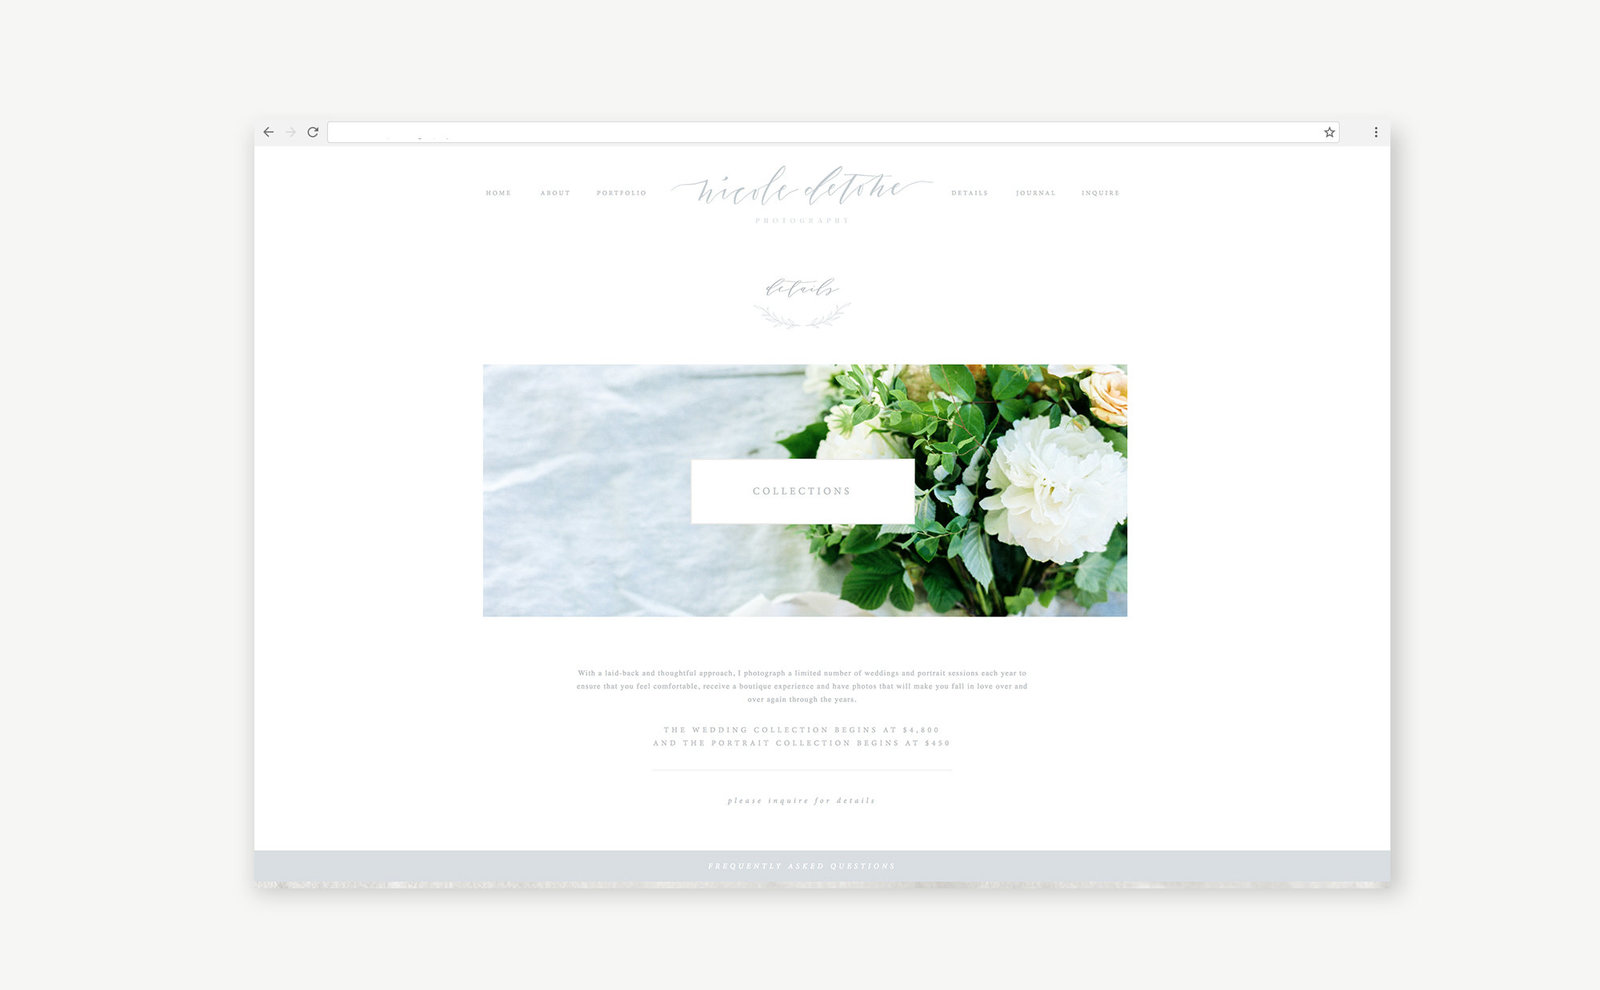 branding-for-photographers-web-design-logo-showit5-custom-fine-art-photographer-ribbon-and-ink-nicole-detone-11